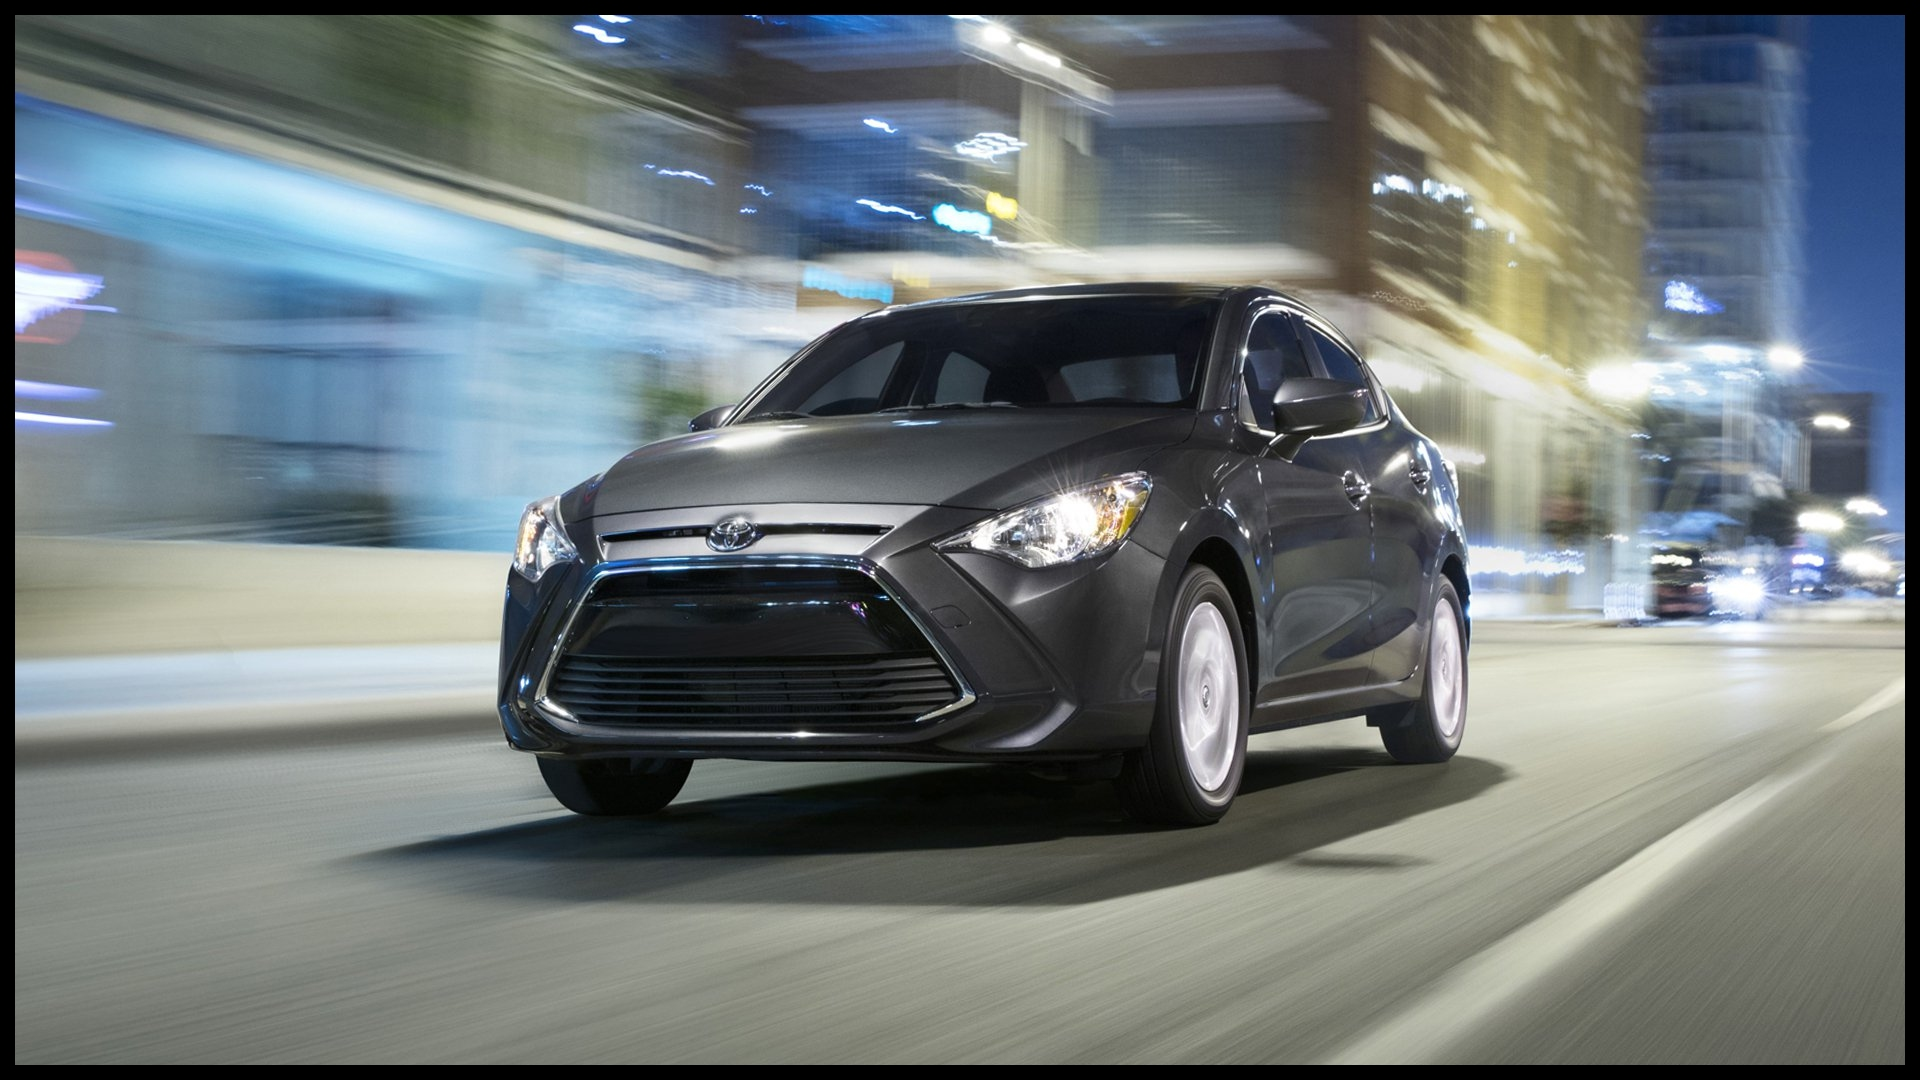 2018 Toyota Yaris iA Review Probably the Best Cheap New Car You Can Buy The Drive